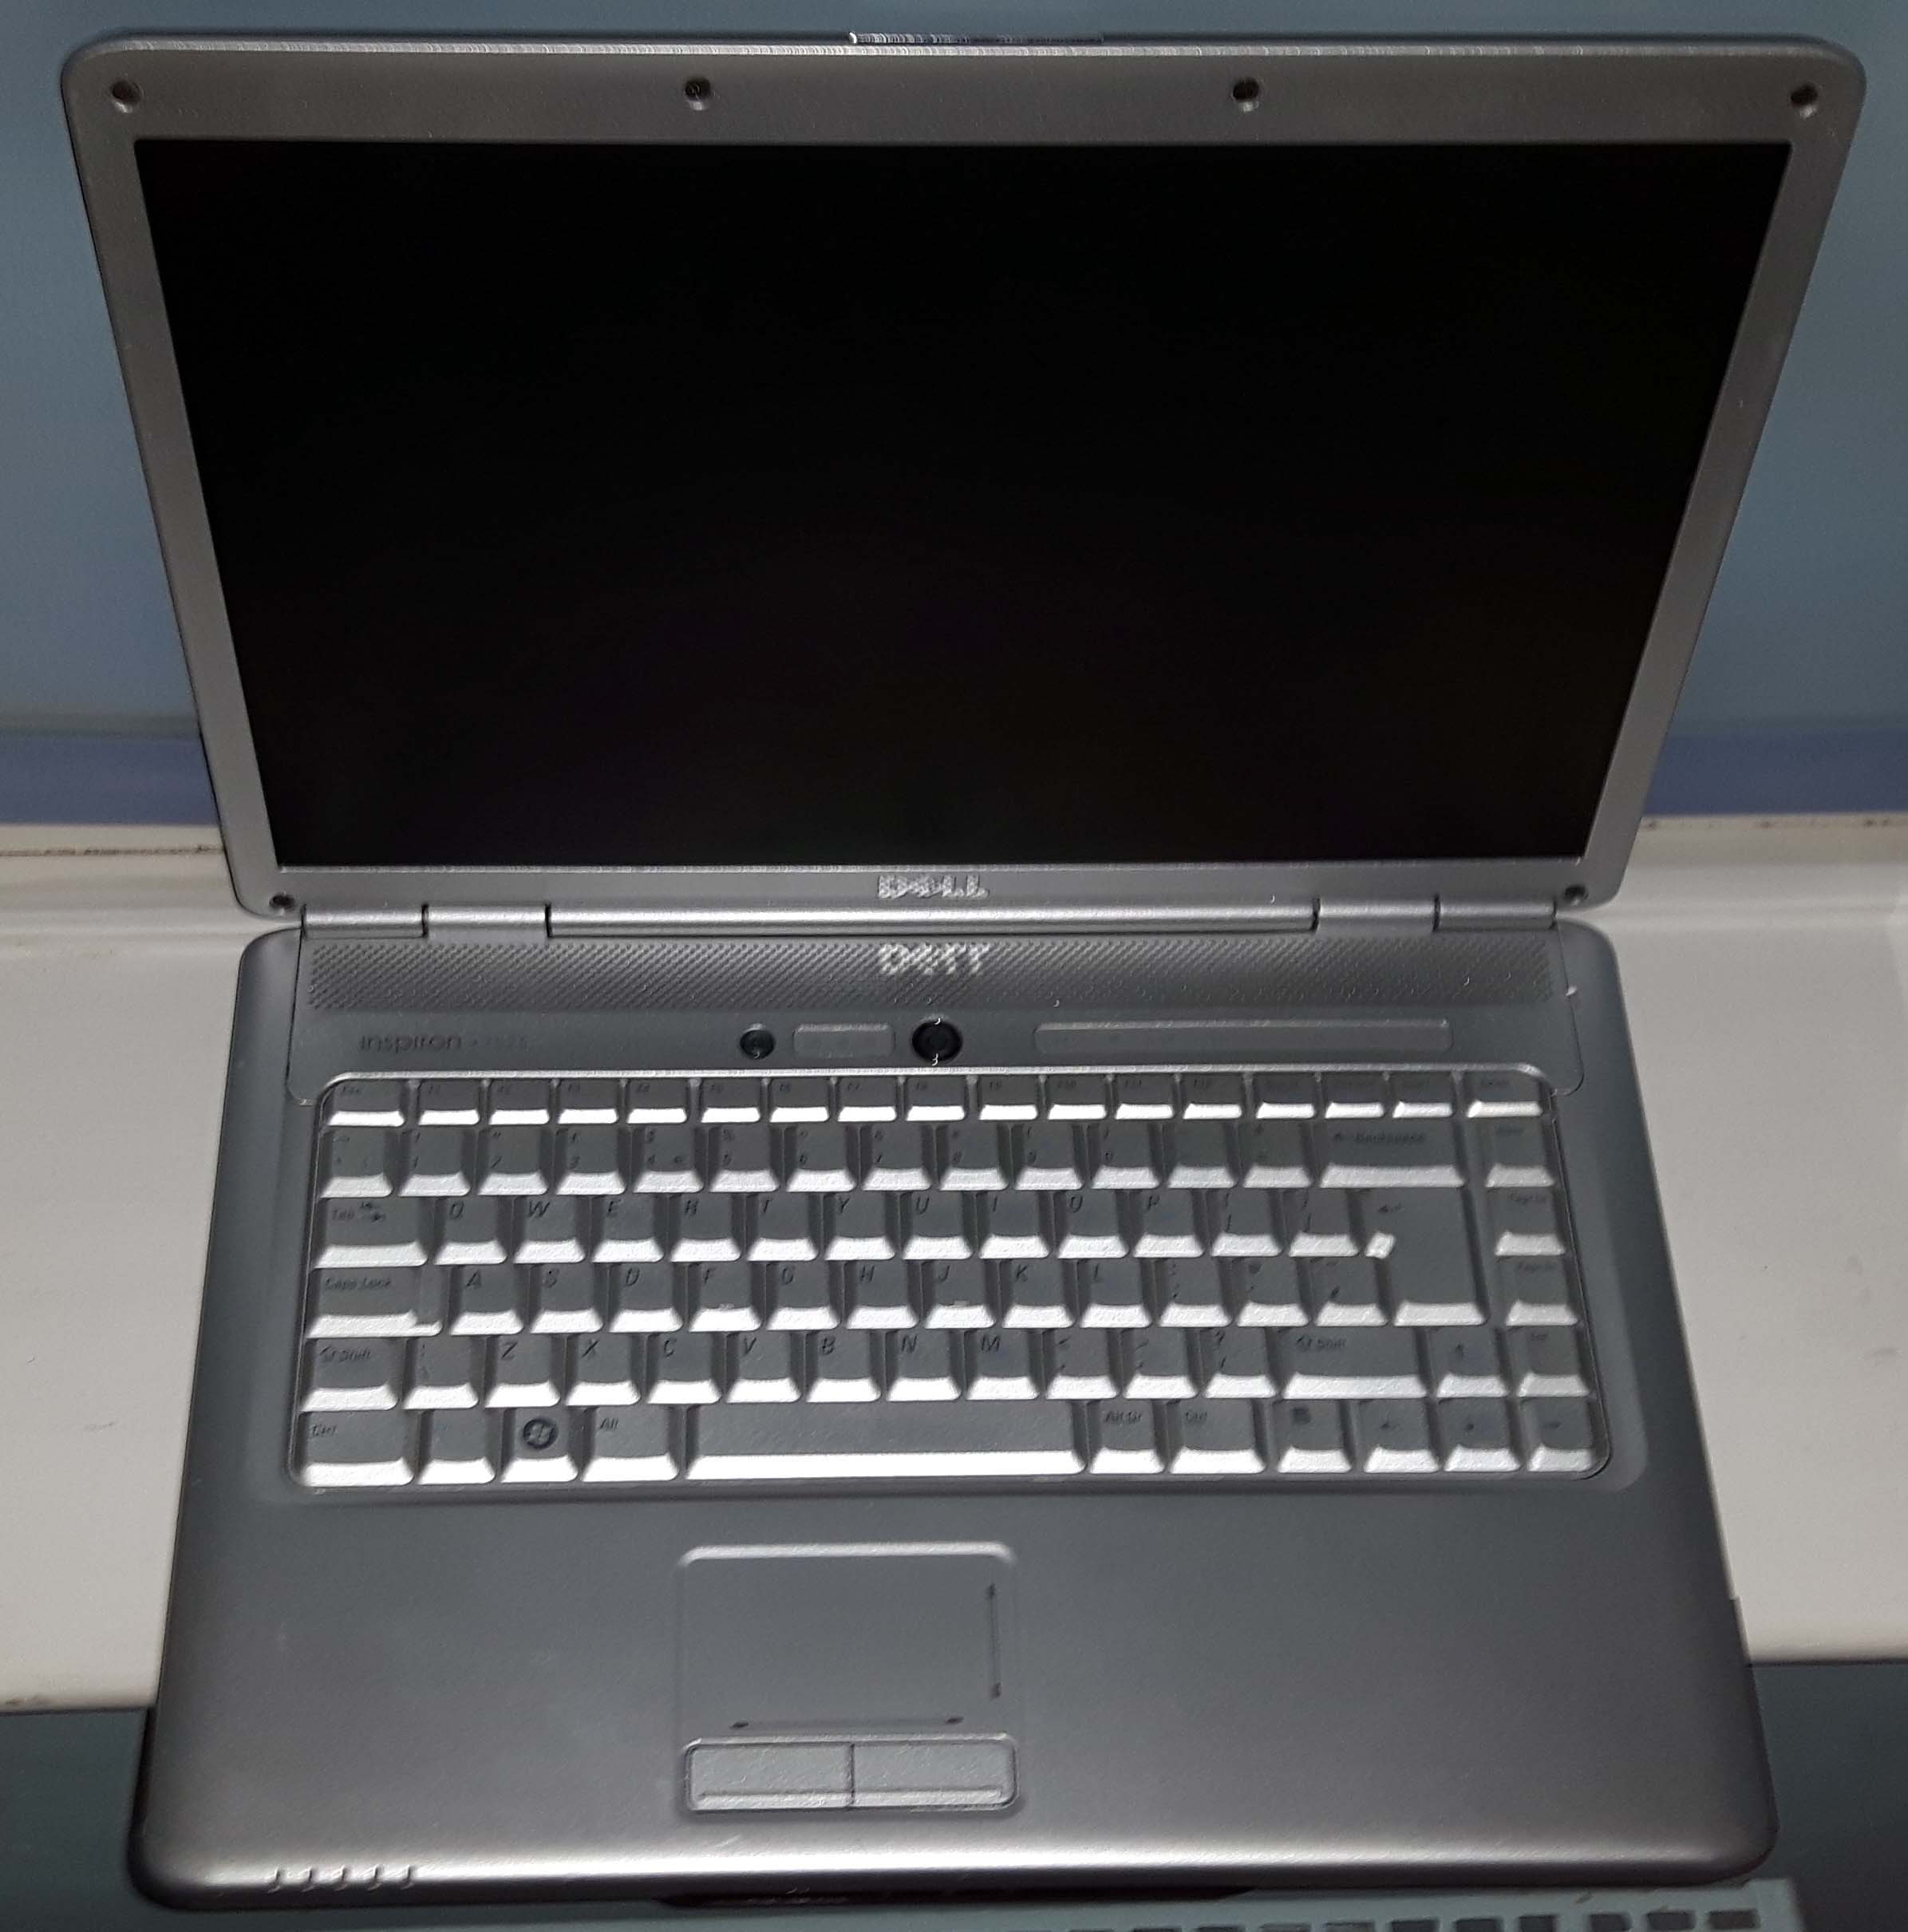 Dell Inspiron 1525 - Wikipedia